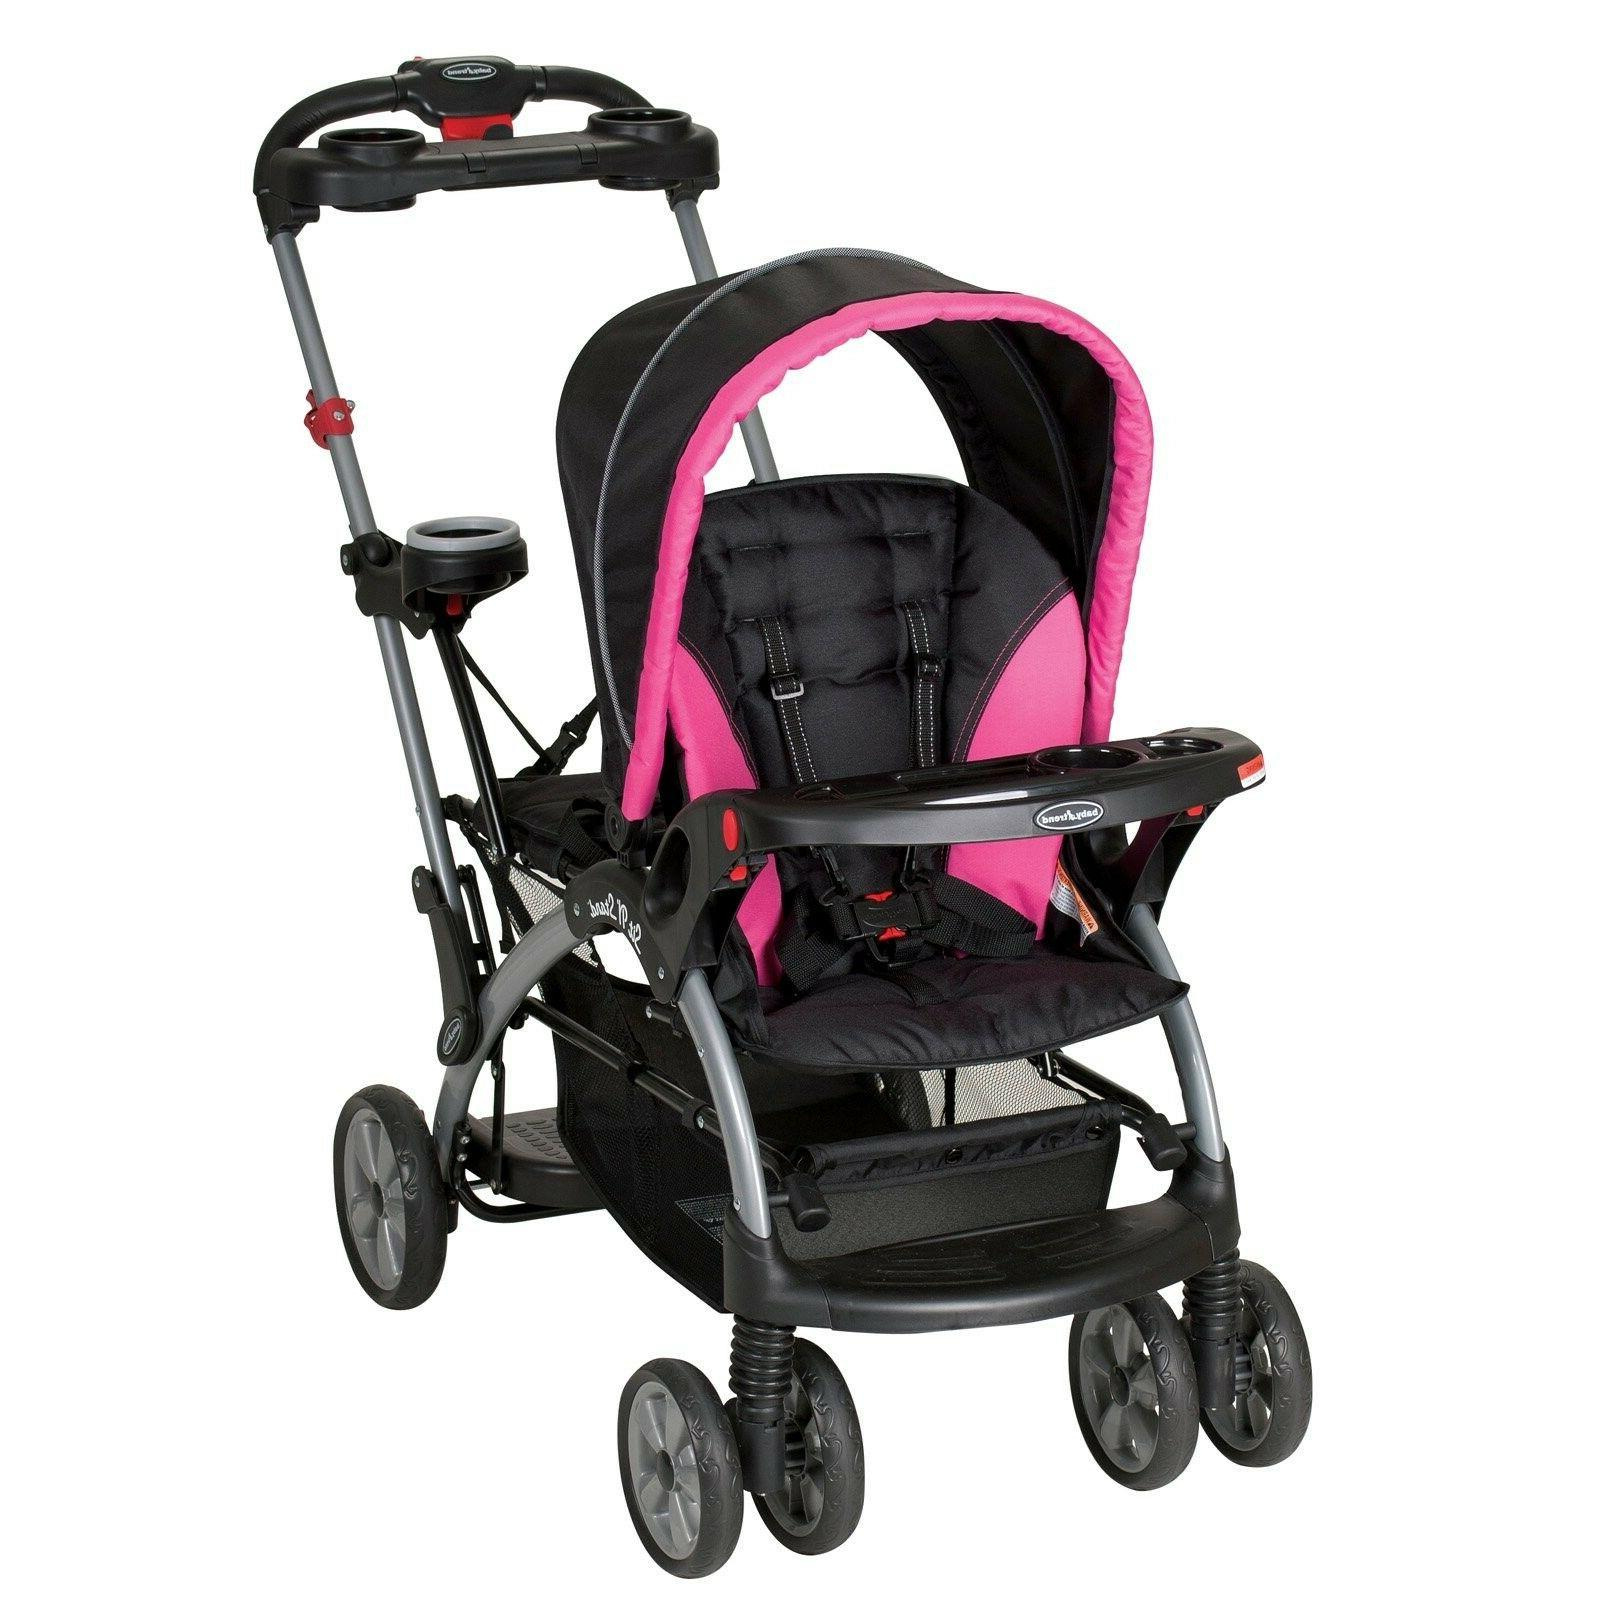 Baby Trend Sit n Stand Ultra Stroller, Bubble Gum